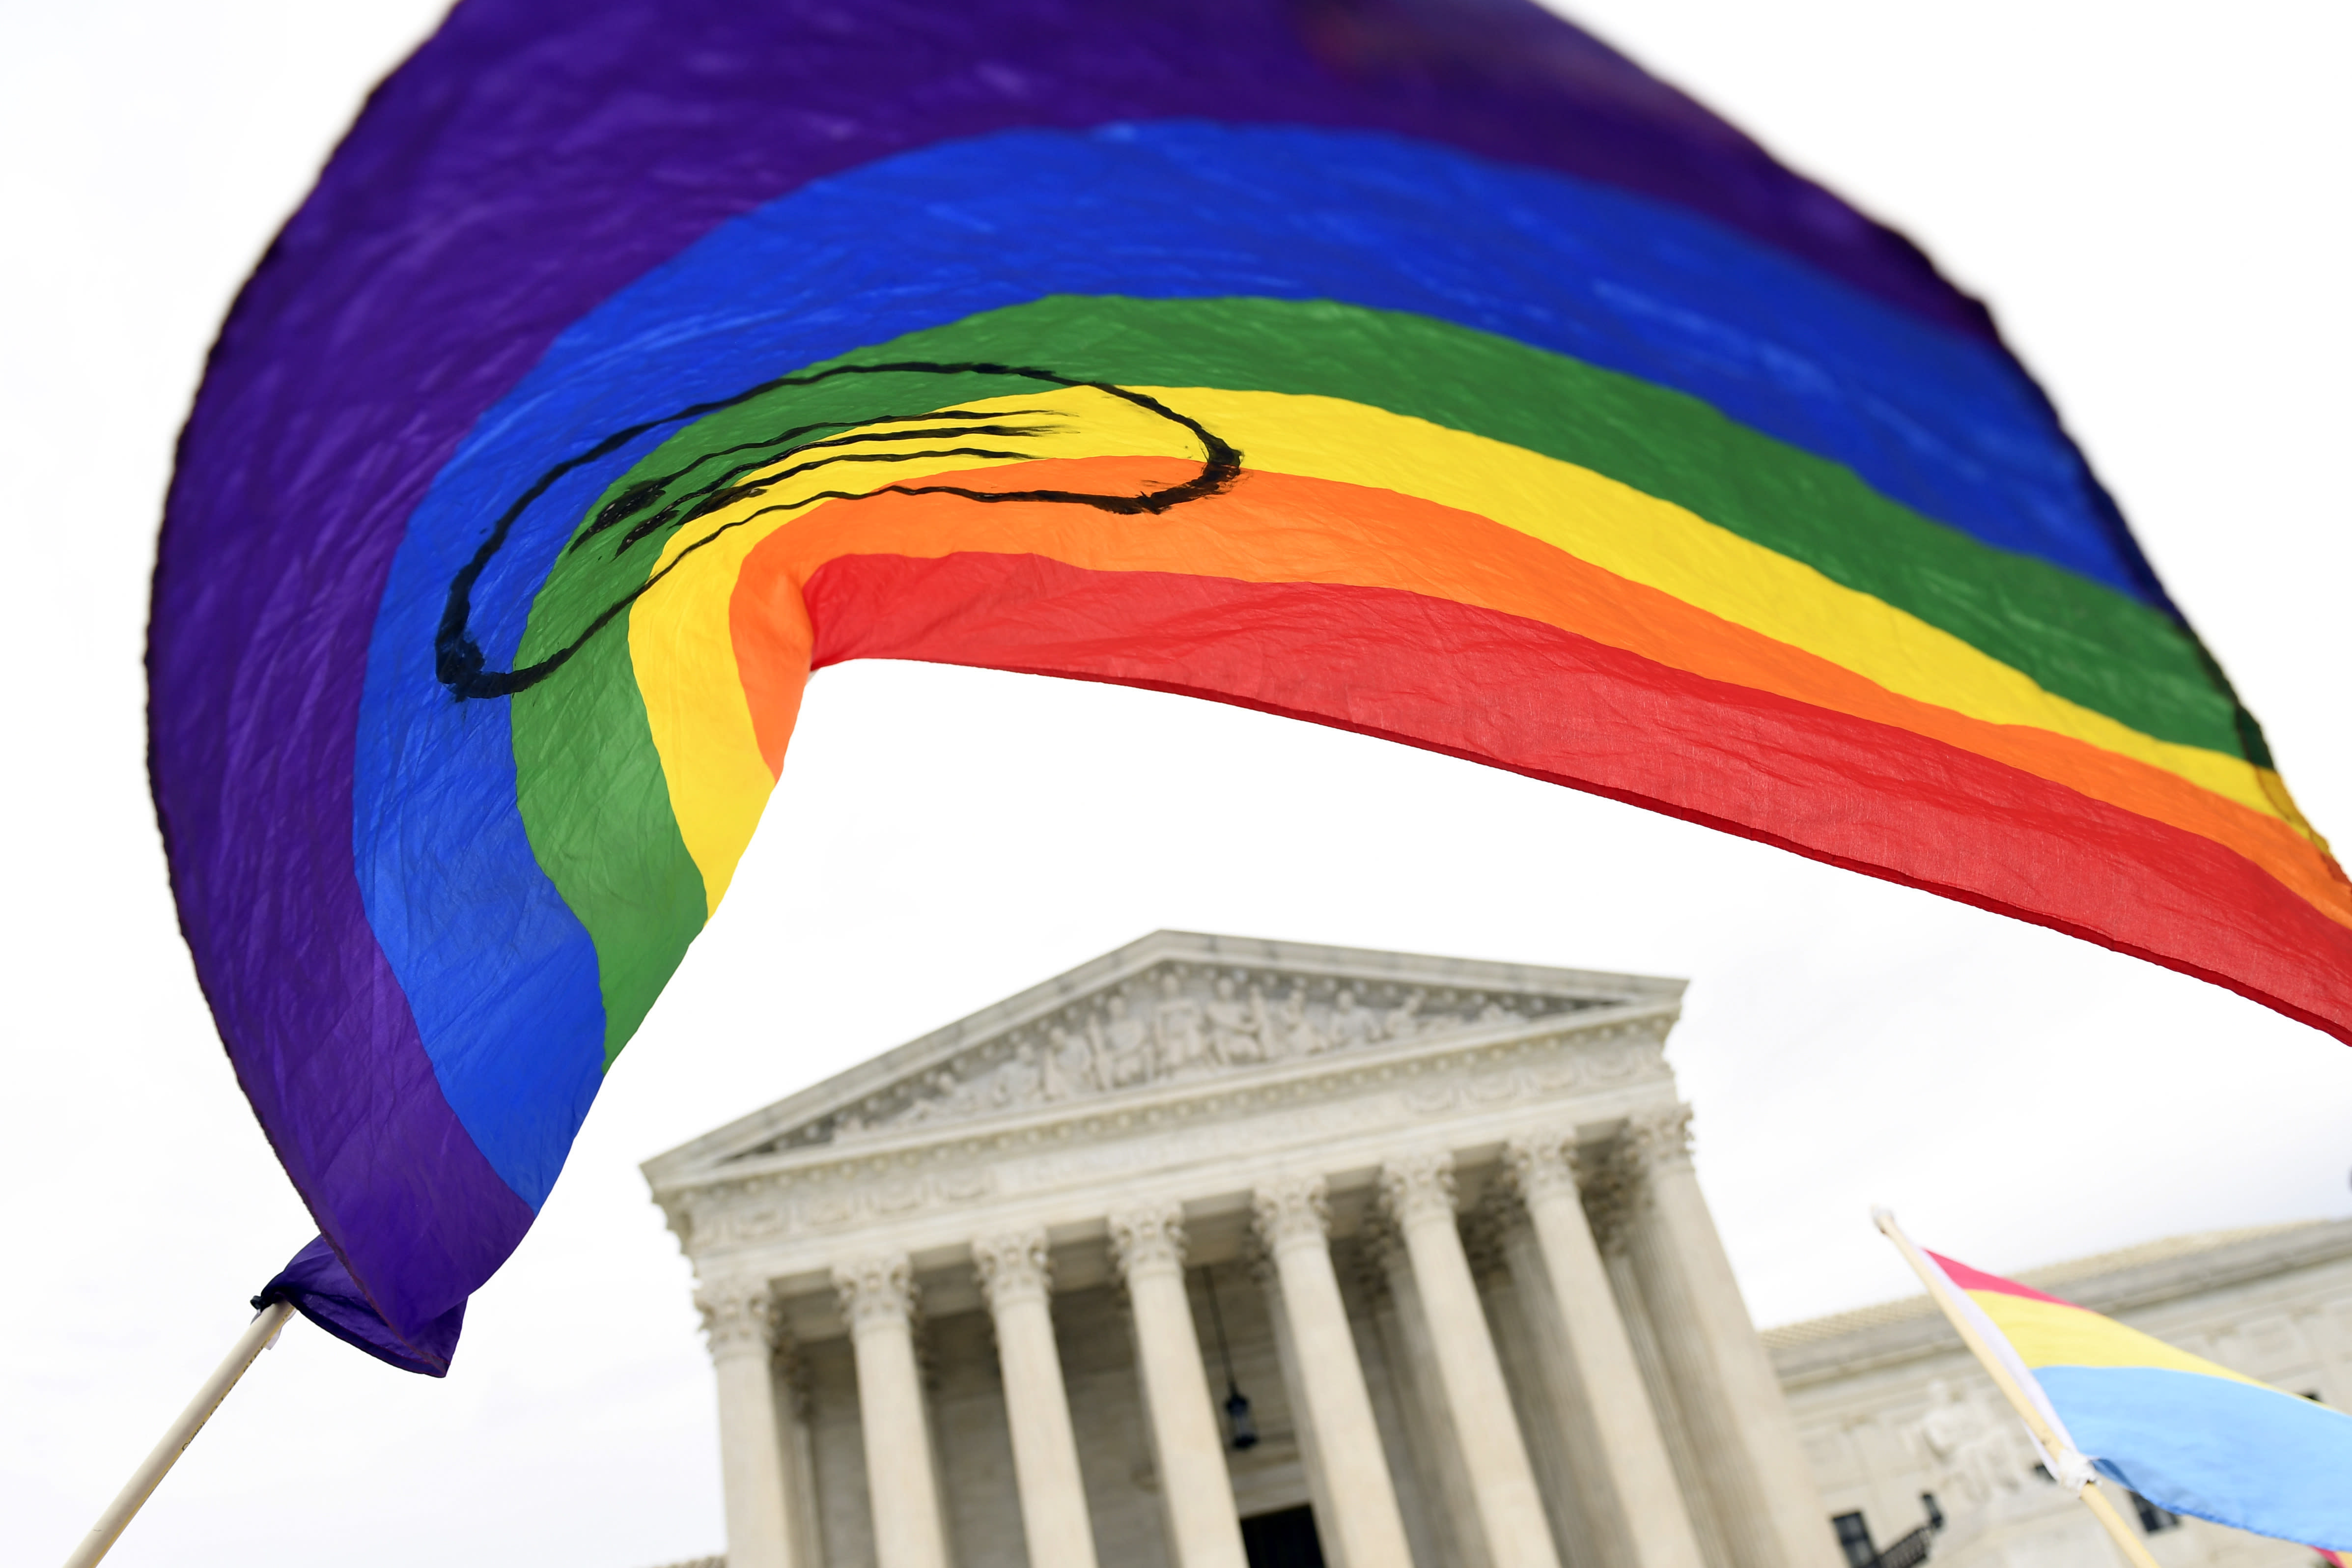 The US Judge Rule Limits Protections for Transgender Health